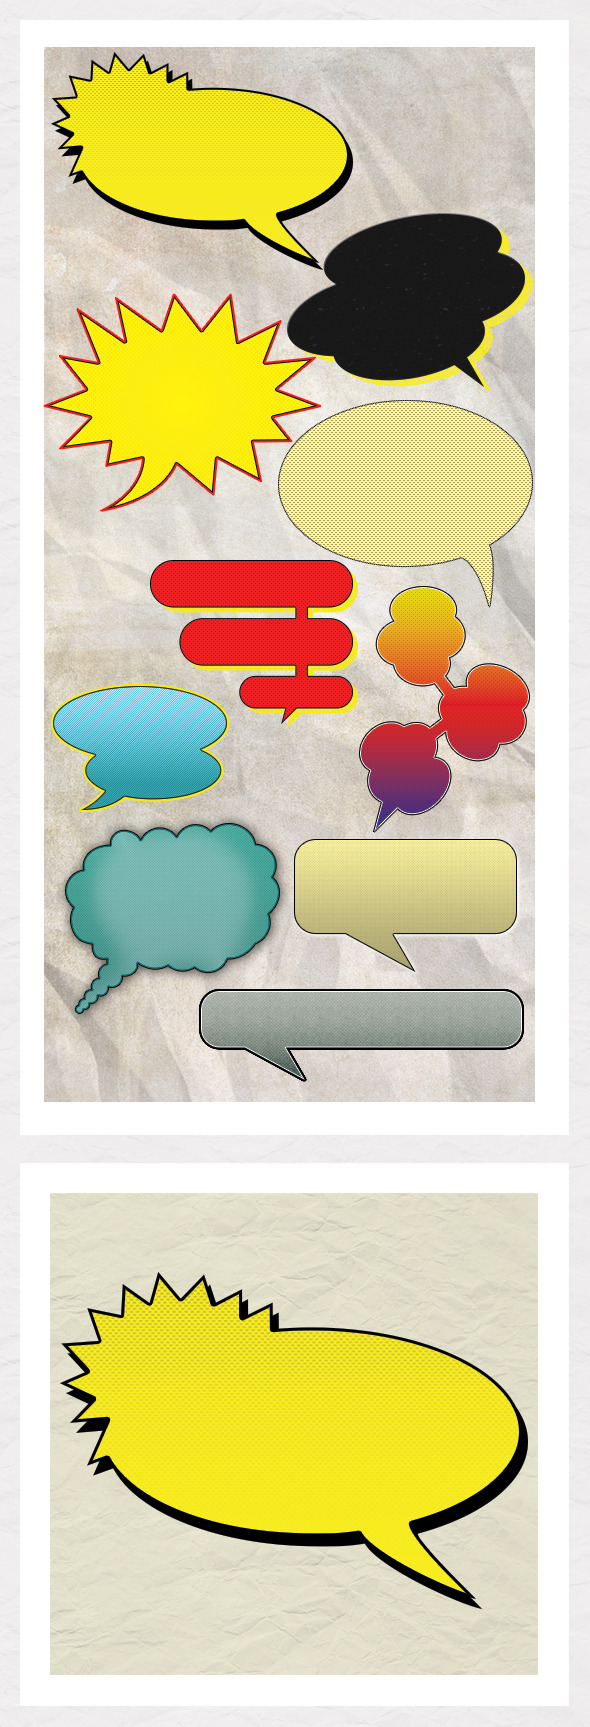 Vintage Comic Book Speech Bubbles - Objects Shapes